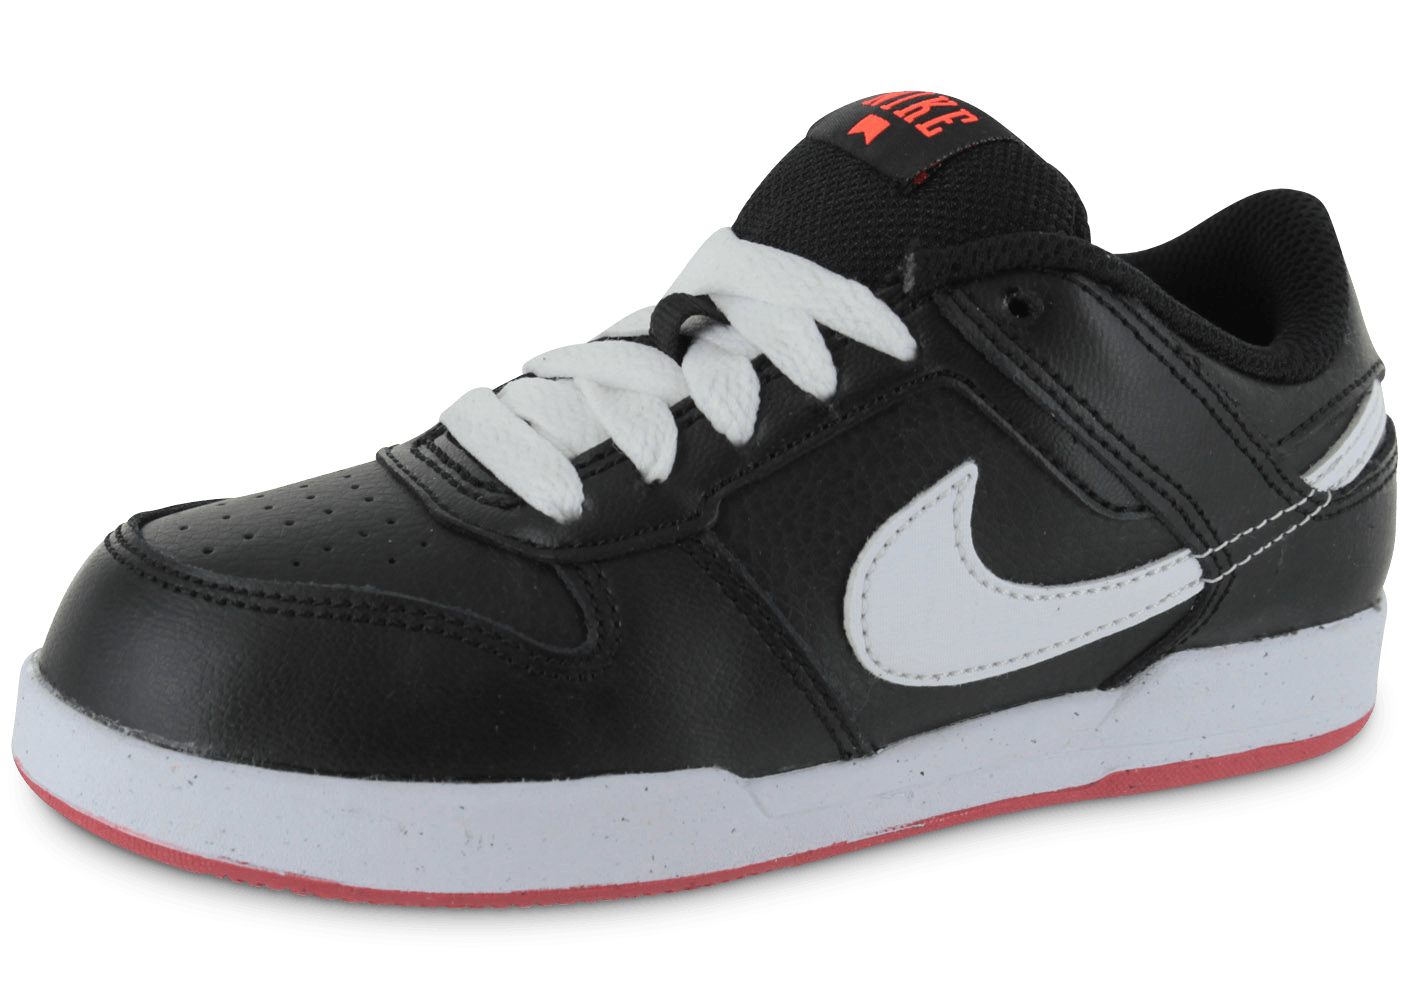 online store 24164 1ee82 Nike Renzo Chausport Enfant Noire Chaussures OOWrnqPH6